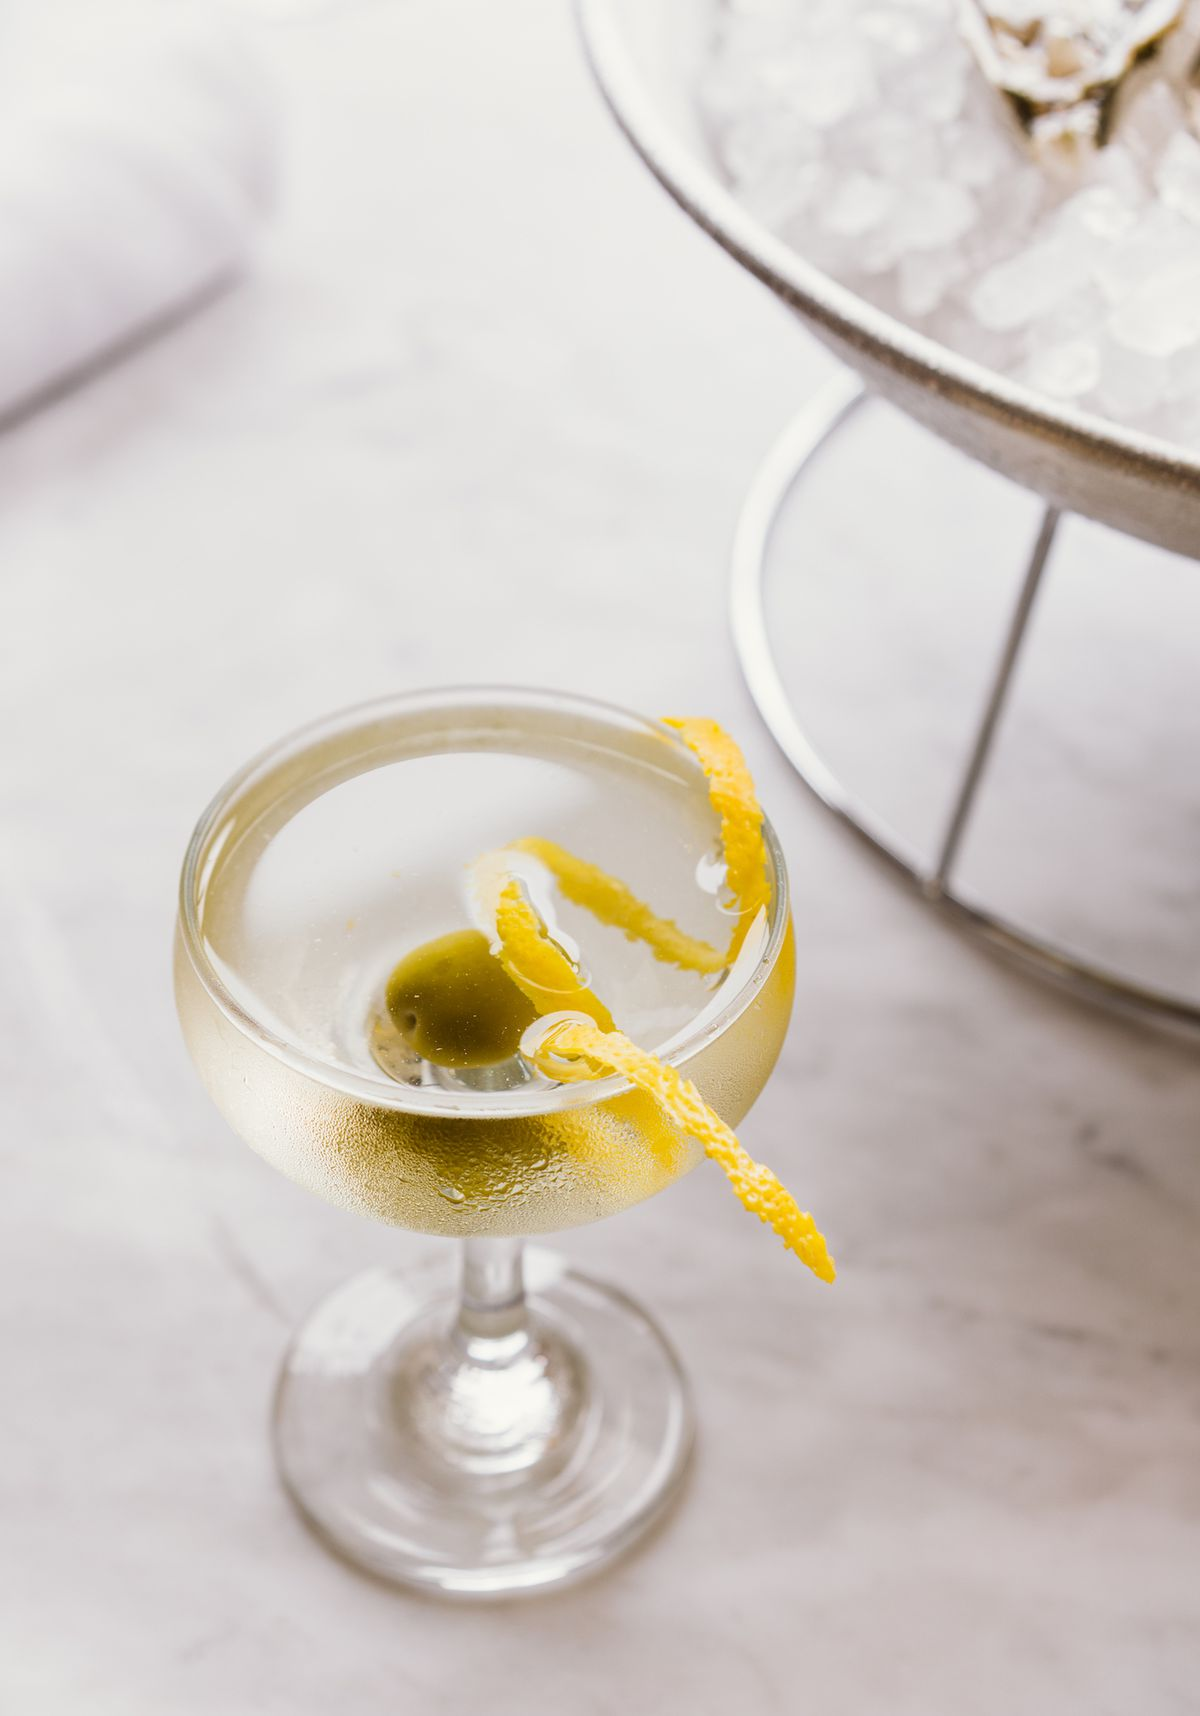 A clear alcohol cocktail with a lemon twist.